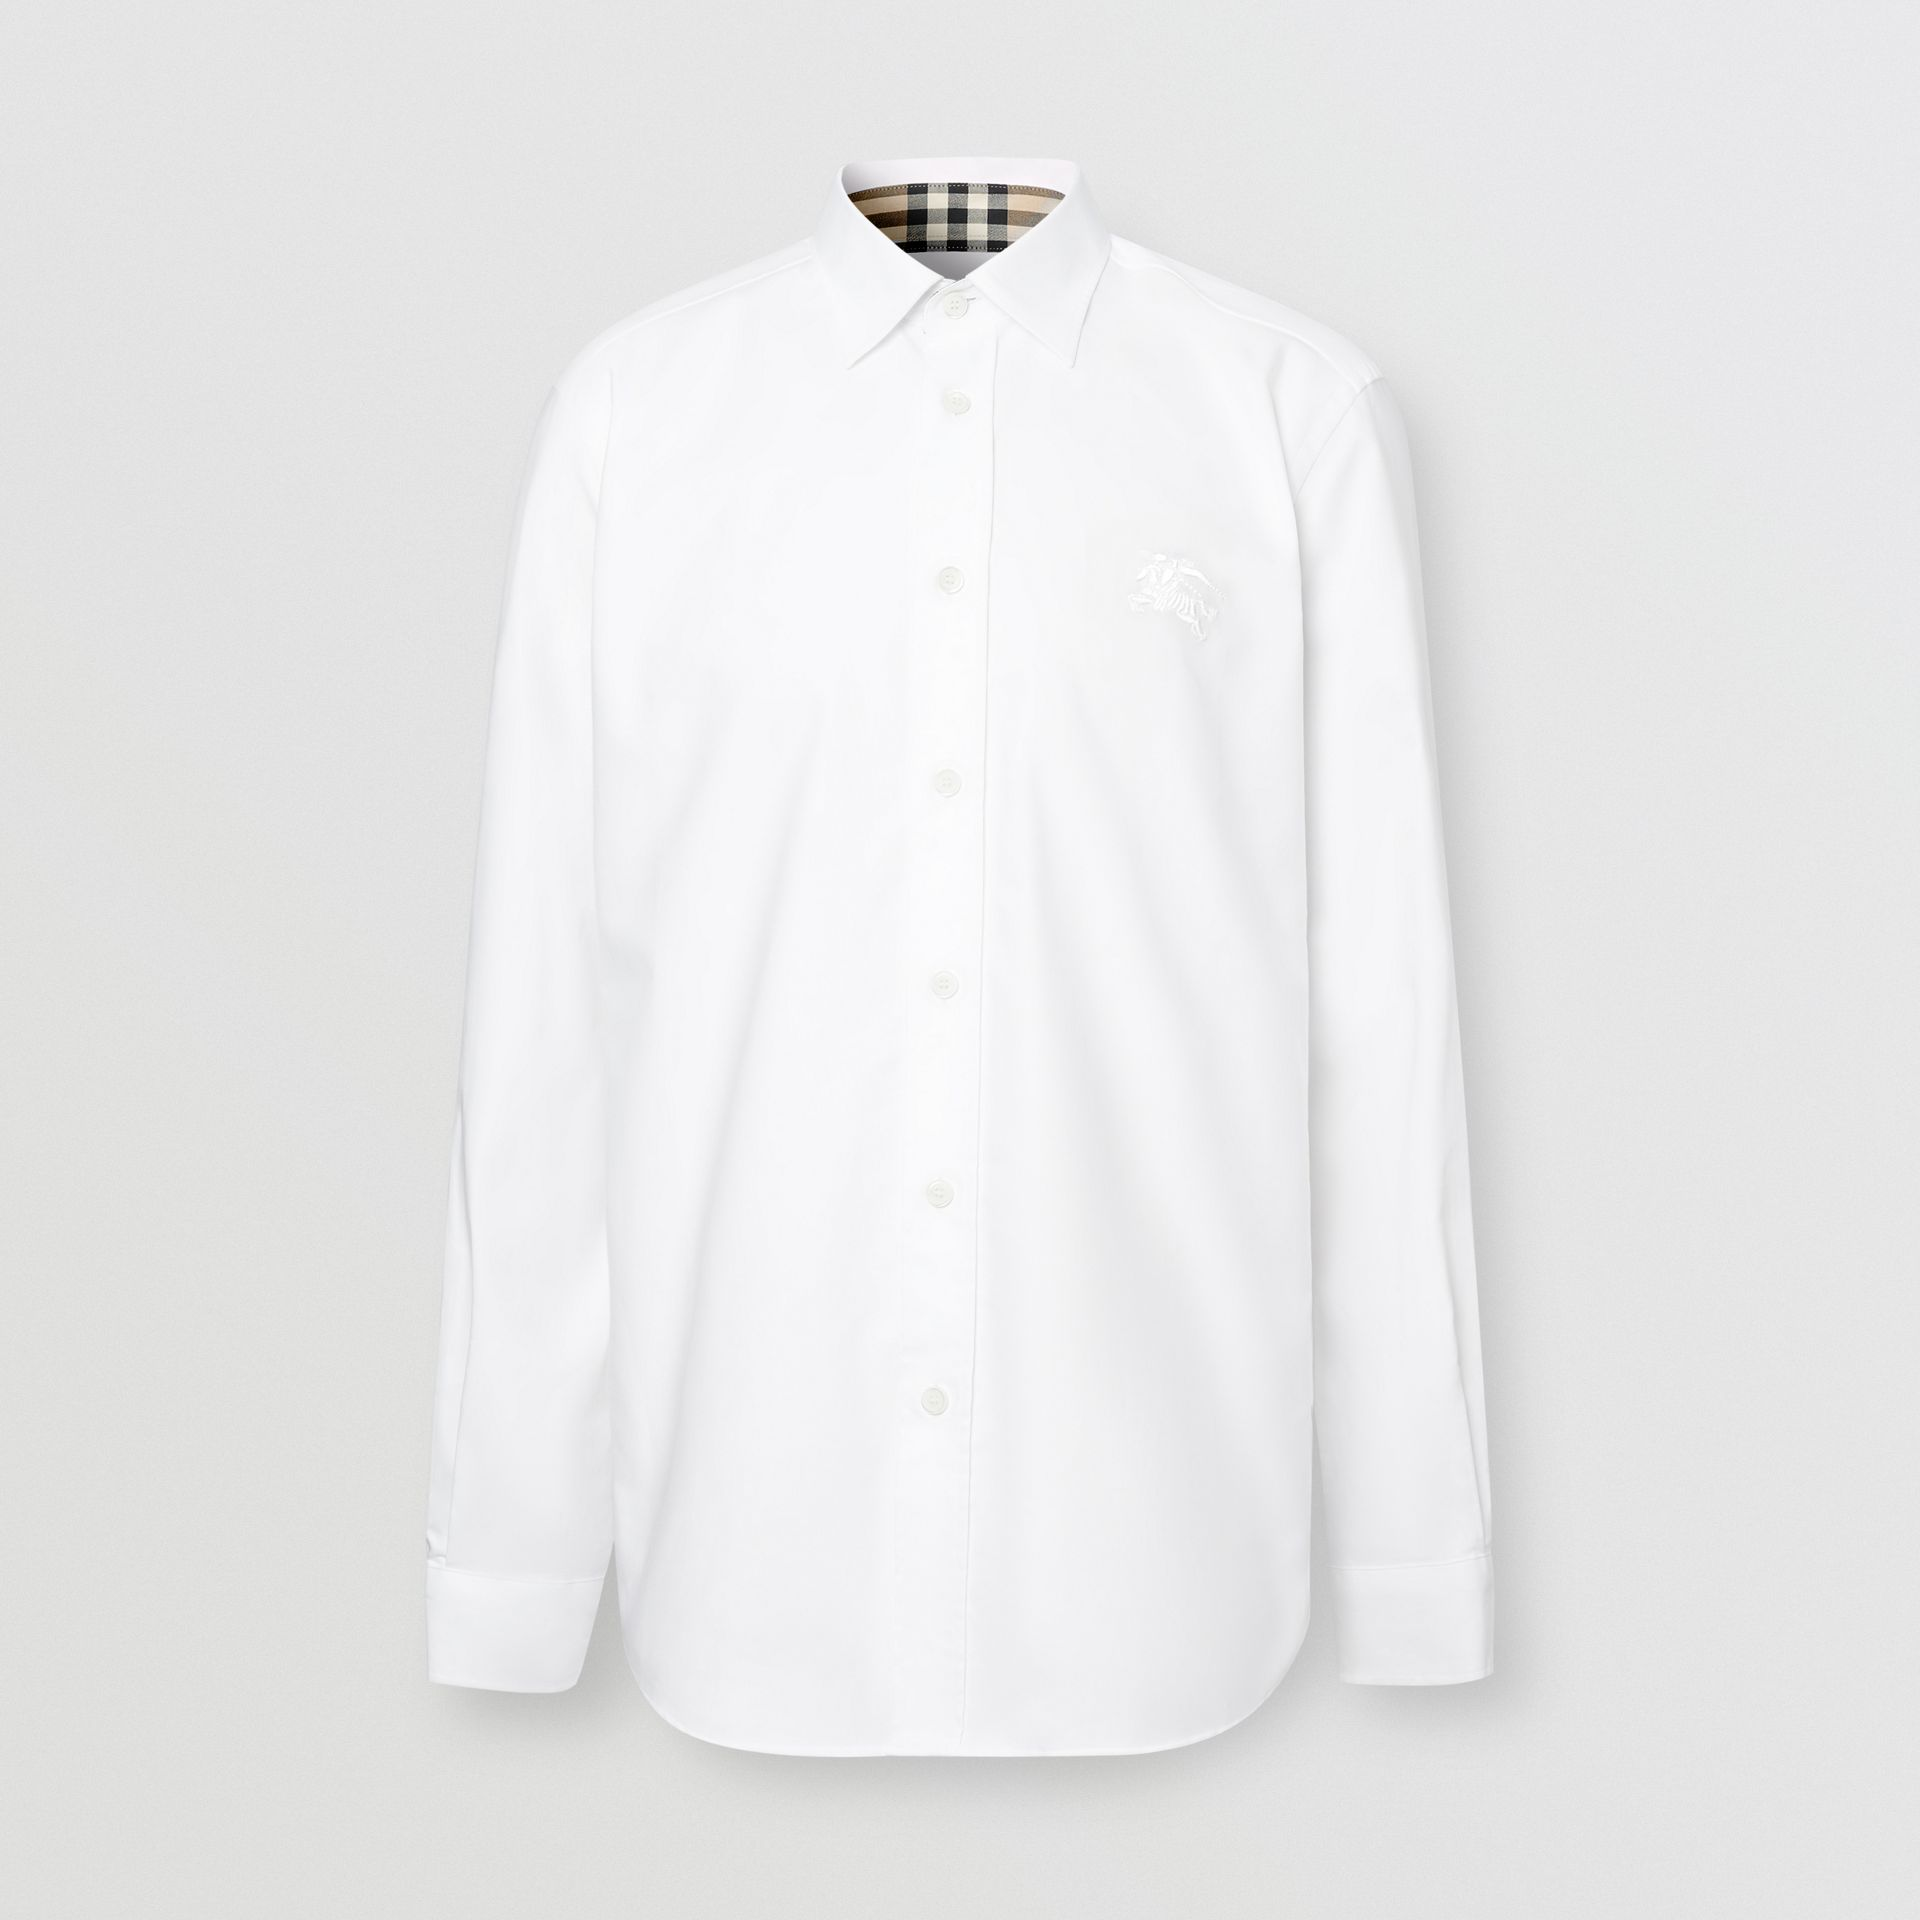 Embroidered EKD Stretch Cotton Poplin Shirt in White - Men | Burberry Hong Kong S.A.R - gallery image 6